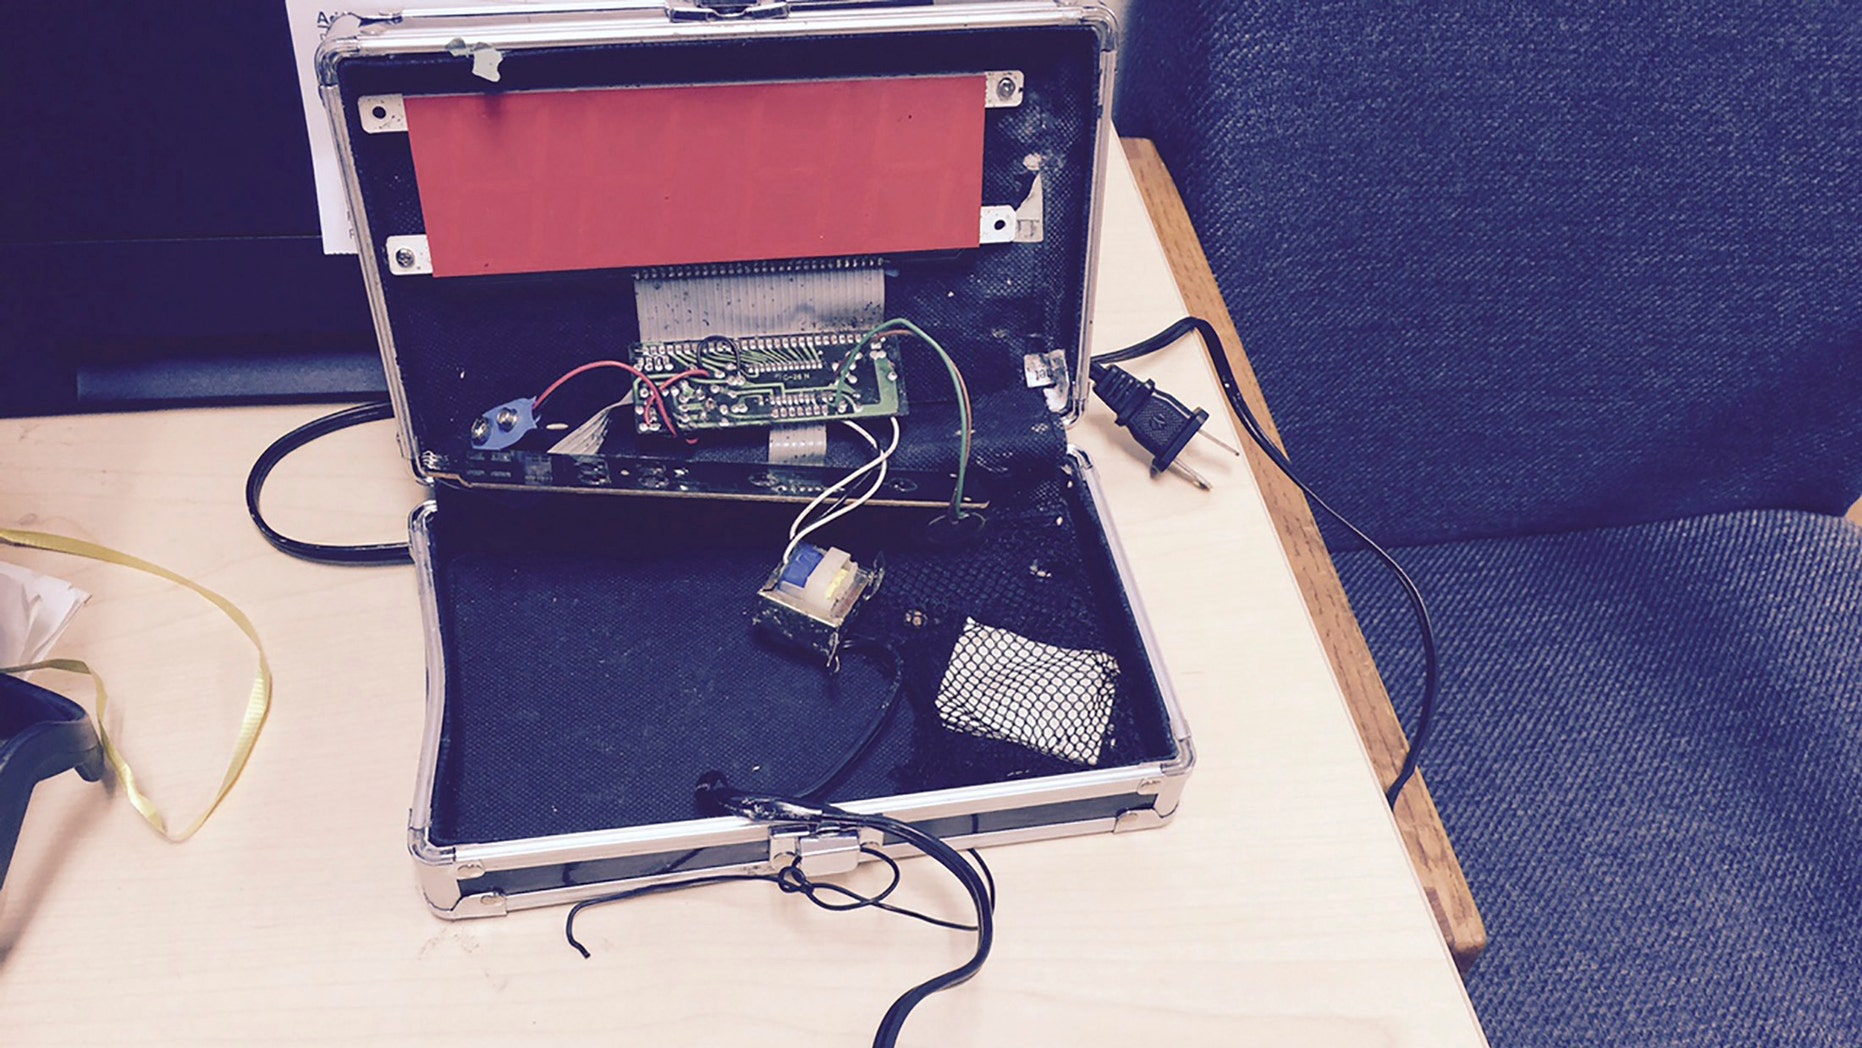 A homemade clock made by Ahmed Mohamed, 14, is seen in an undated picture released by the Irving Texas Police Department Sept.16, 2015.